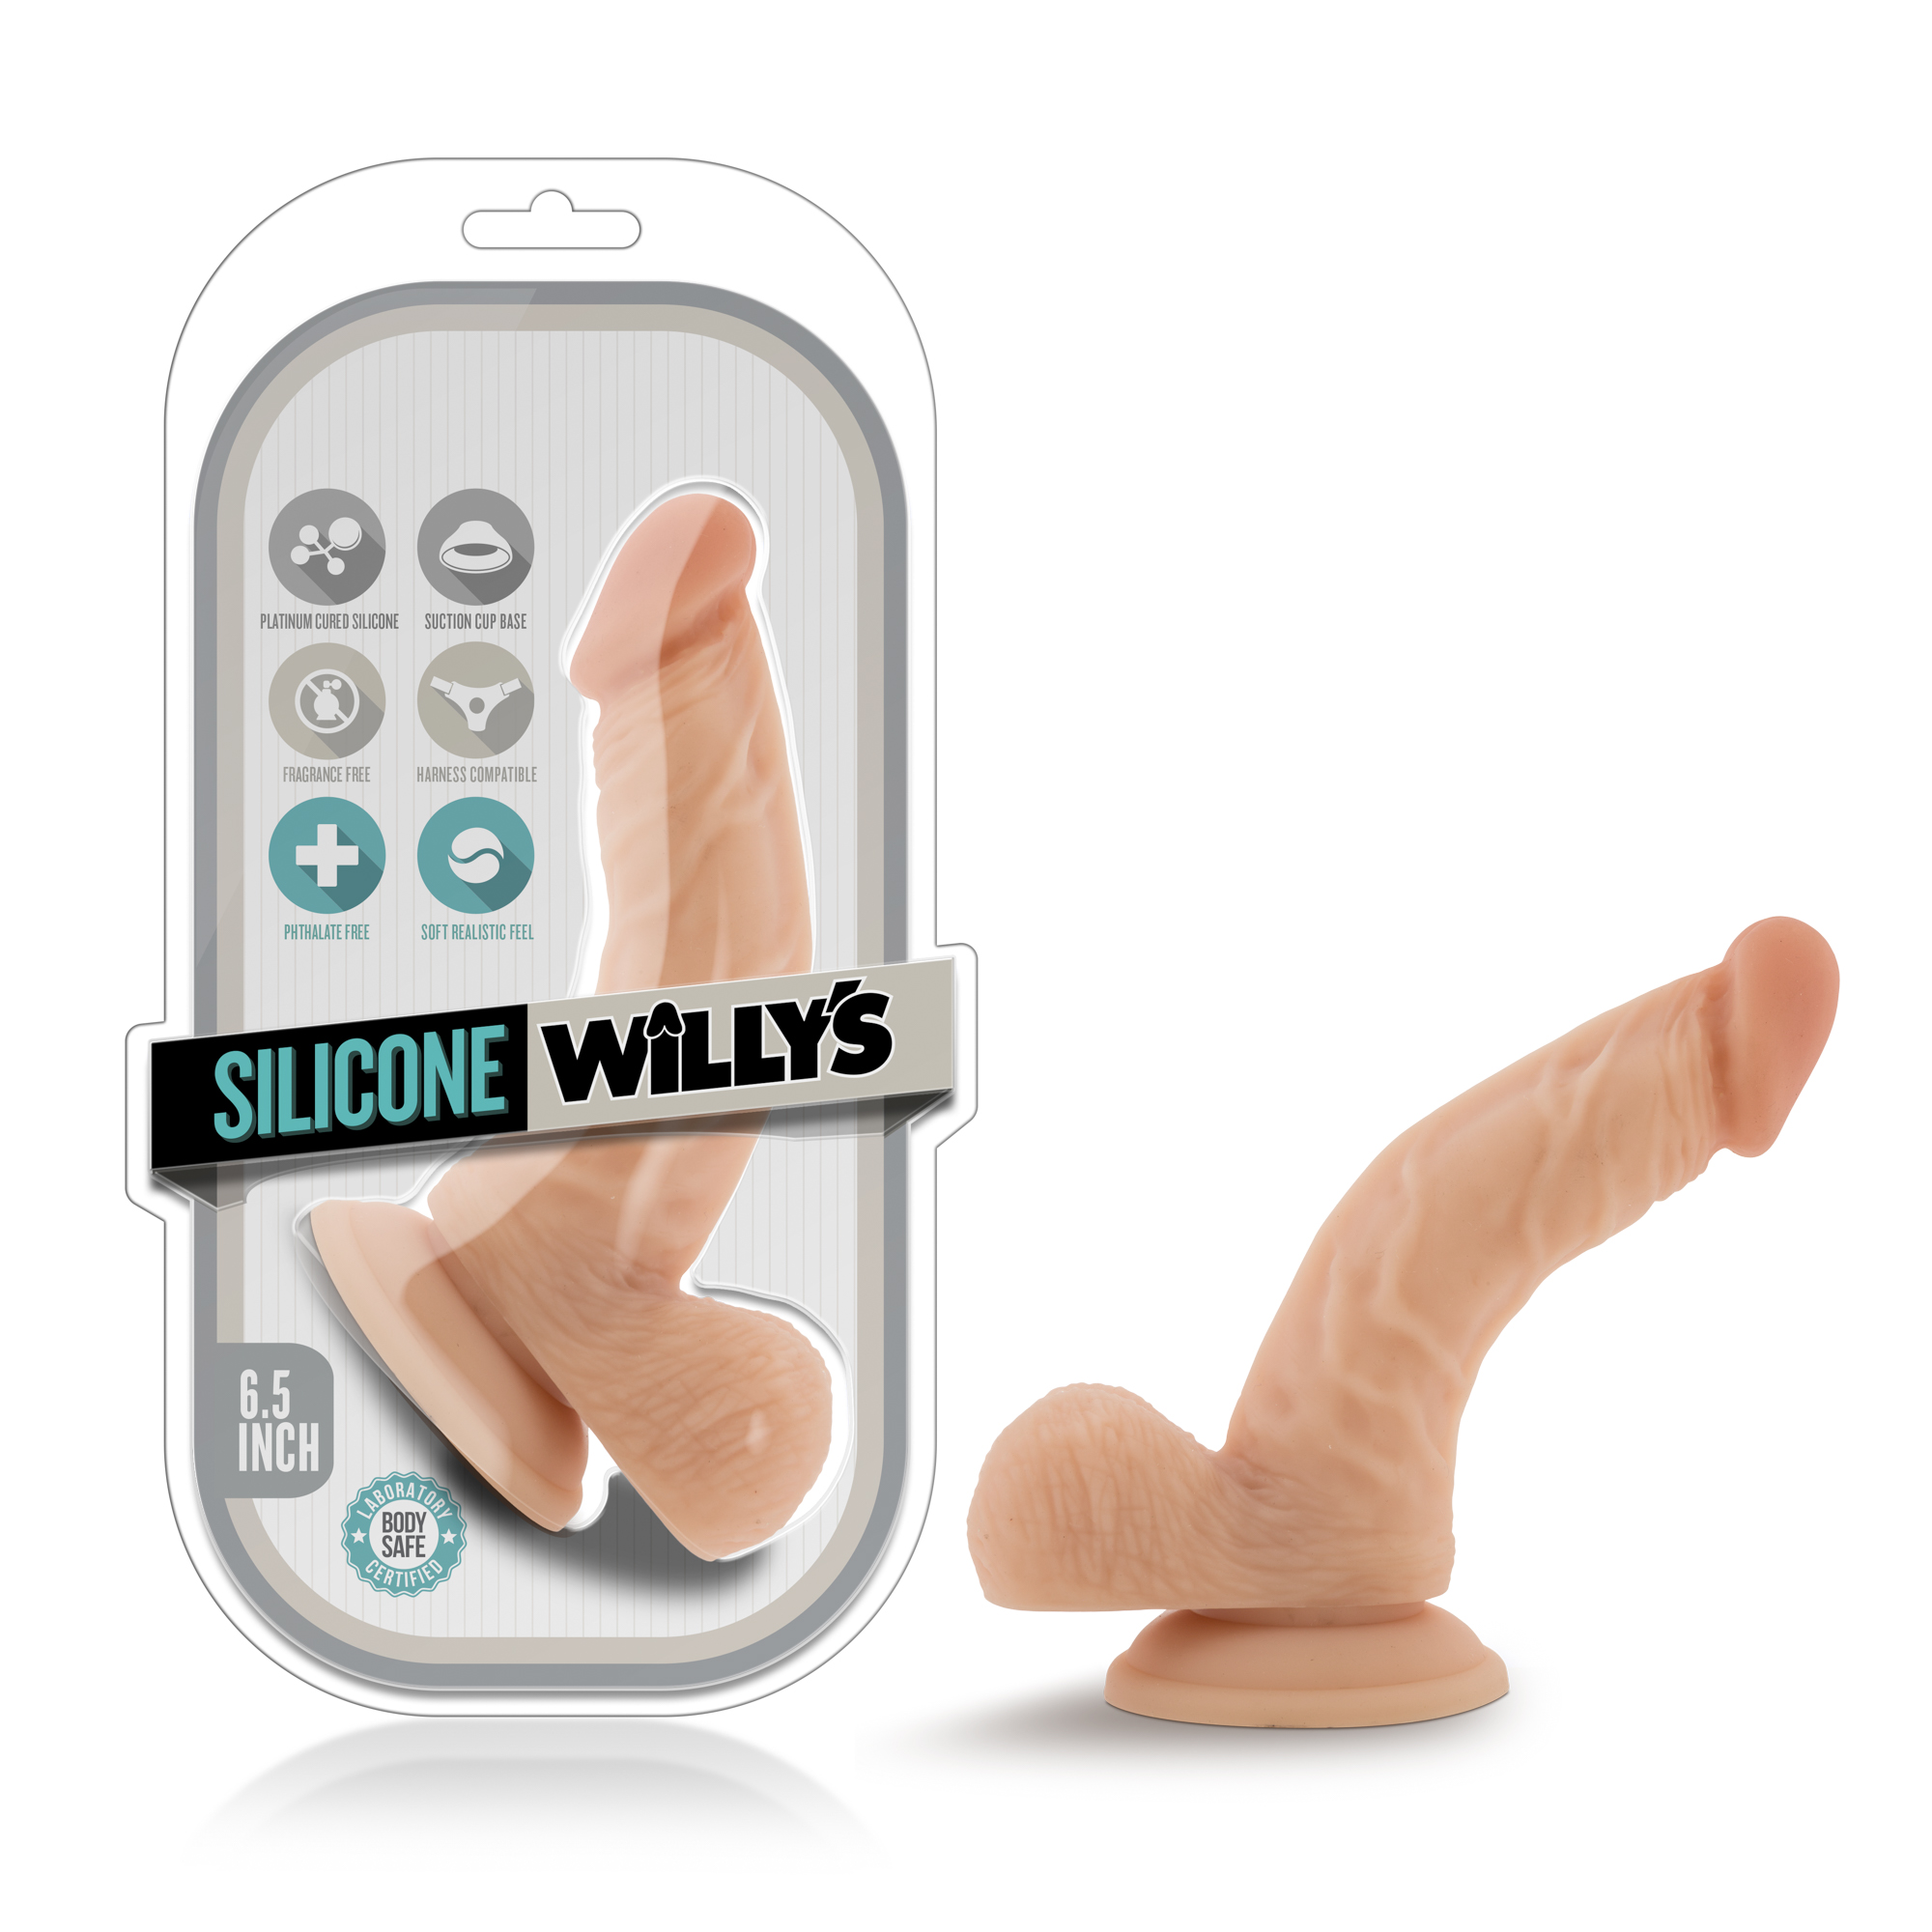 Silicone Willy's - 6.5 Inch Silicone Dildo With Balls - Vanilla